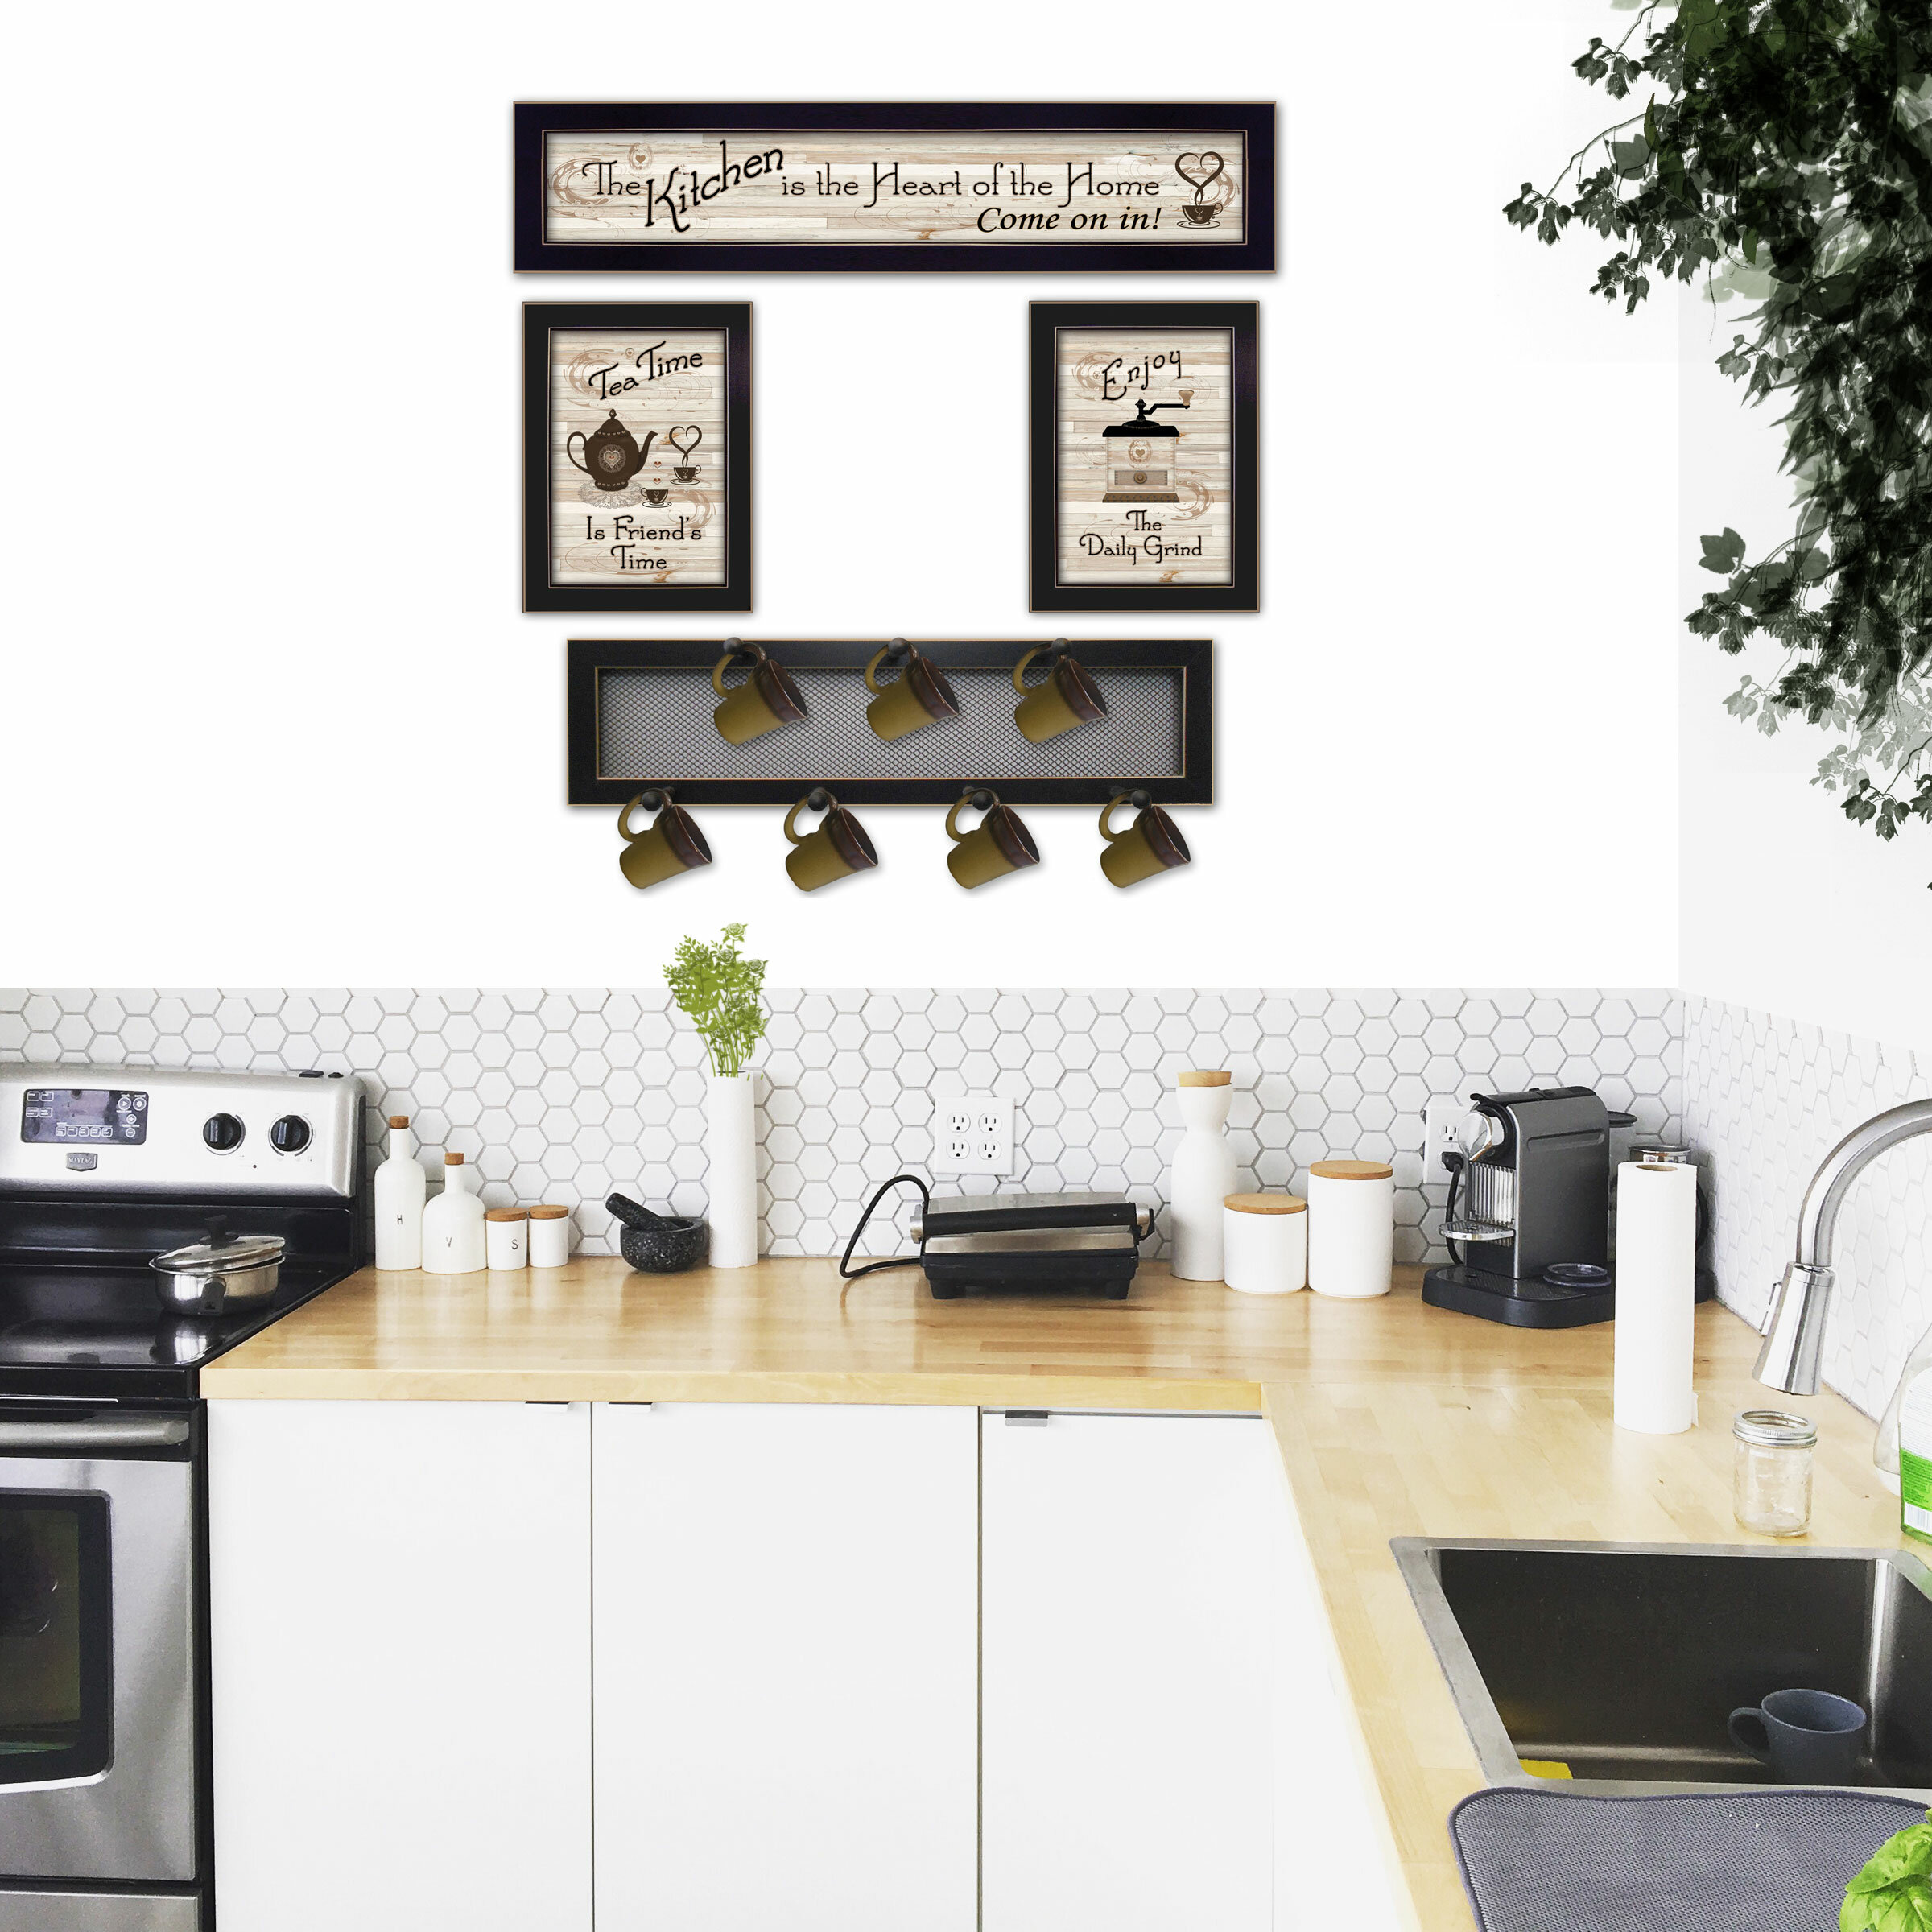 4 Piece Kitchen Wall Décor Set